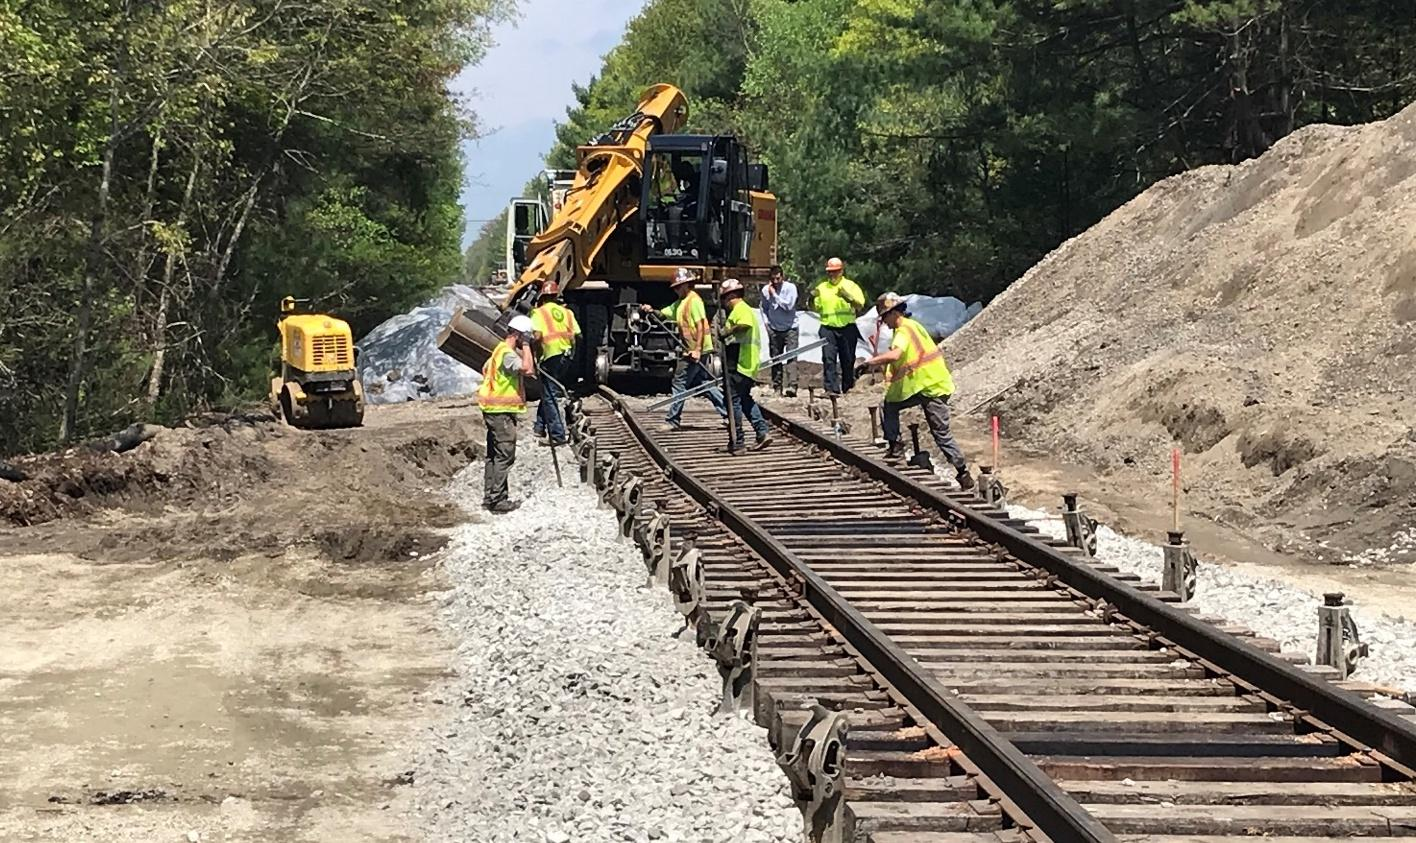 Workers restore tracks as part of the South Coast Rail project (May 2019)